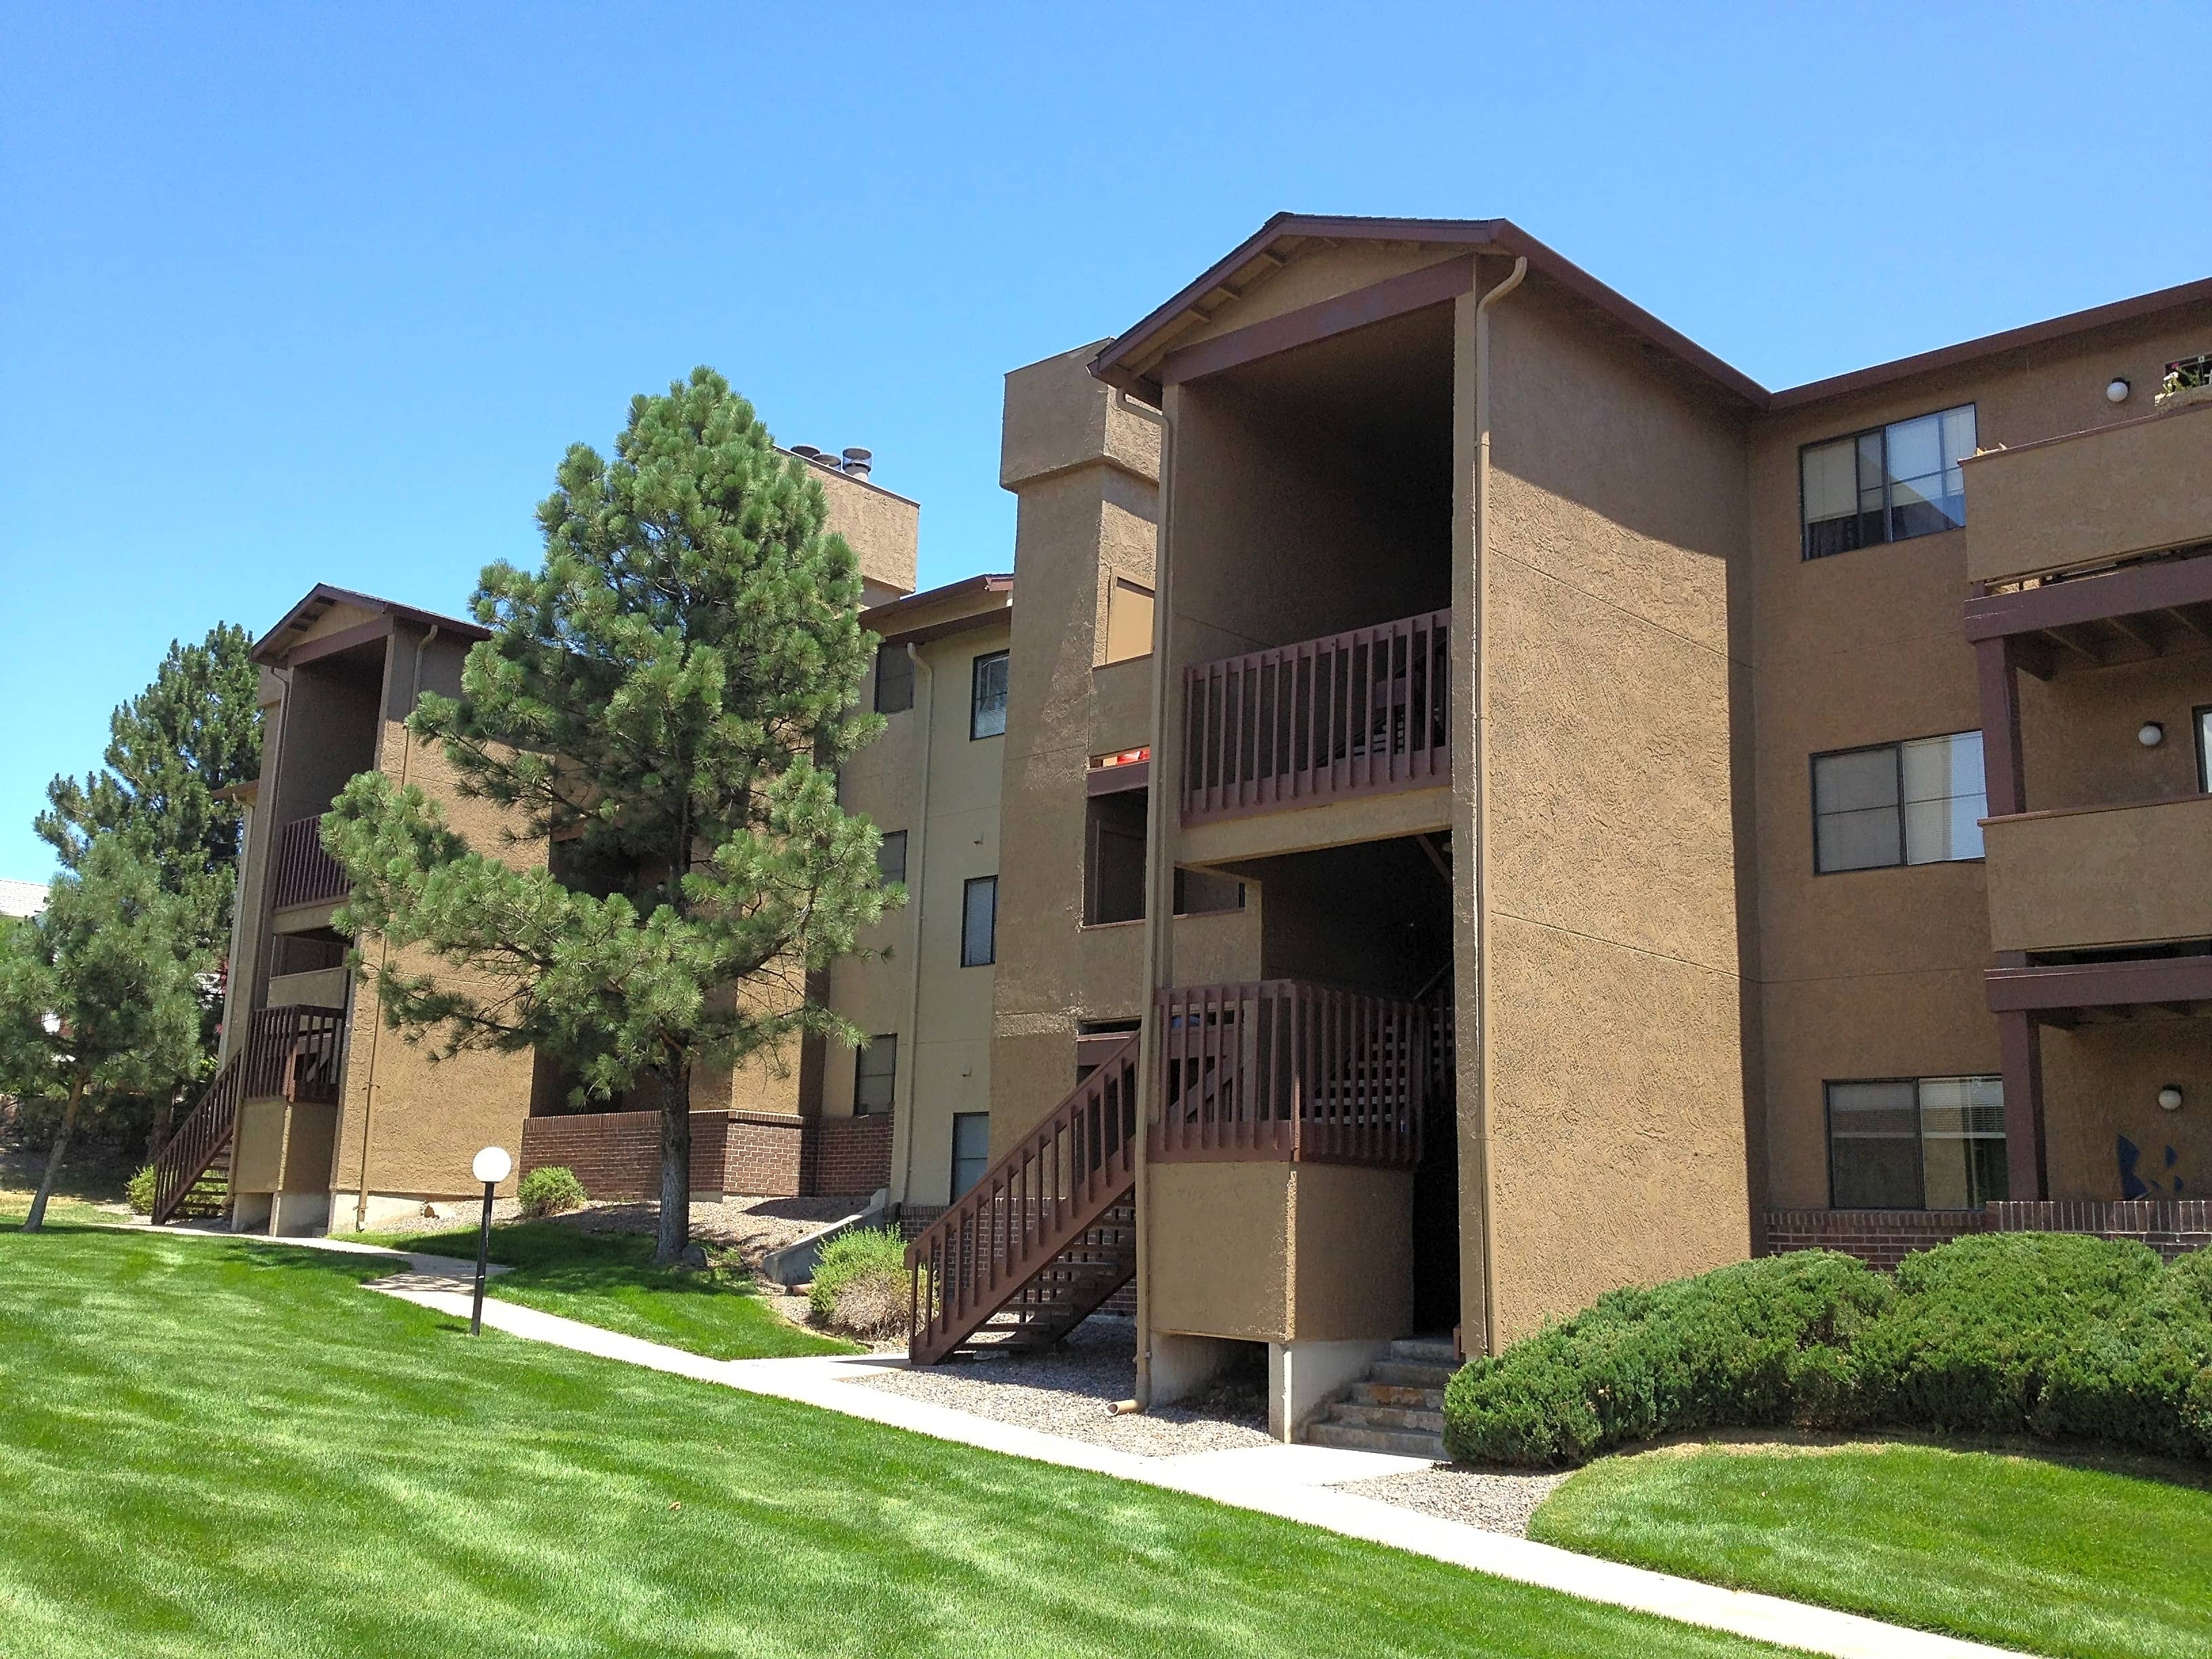 Photo: Lakewood Apartment for Rent - $950.00 / month; 1 Bd & 1 Ba